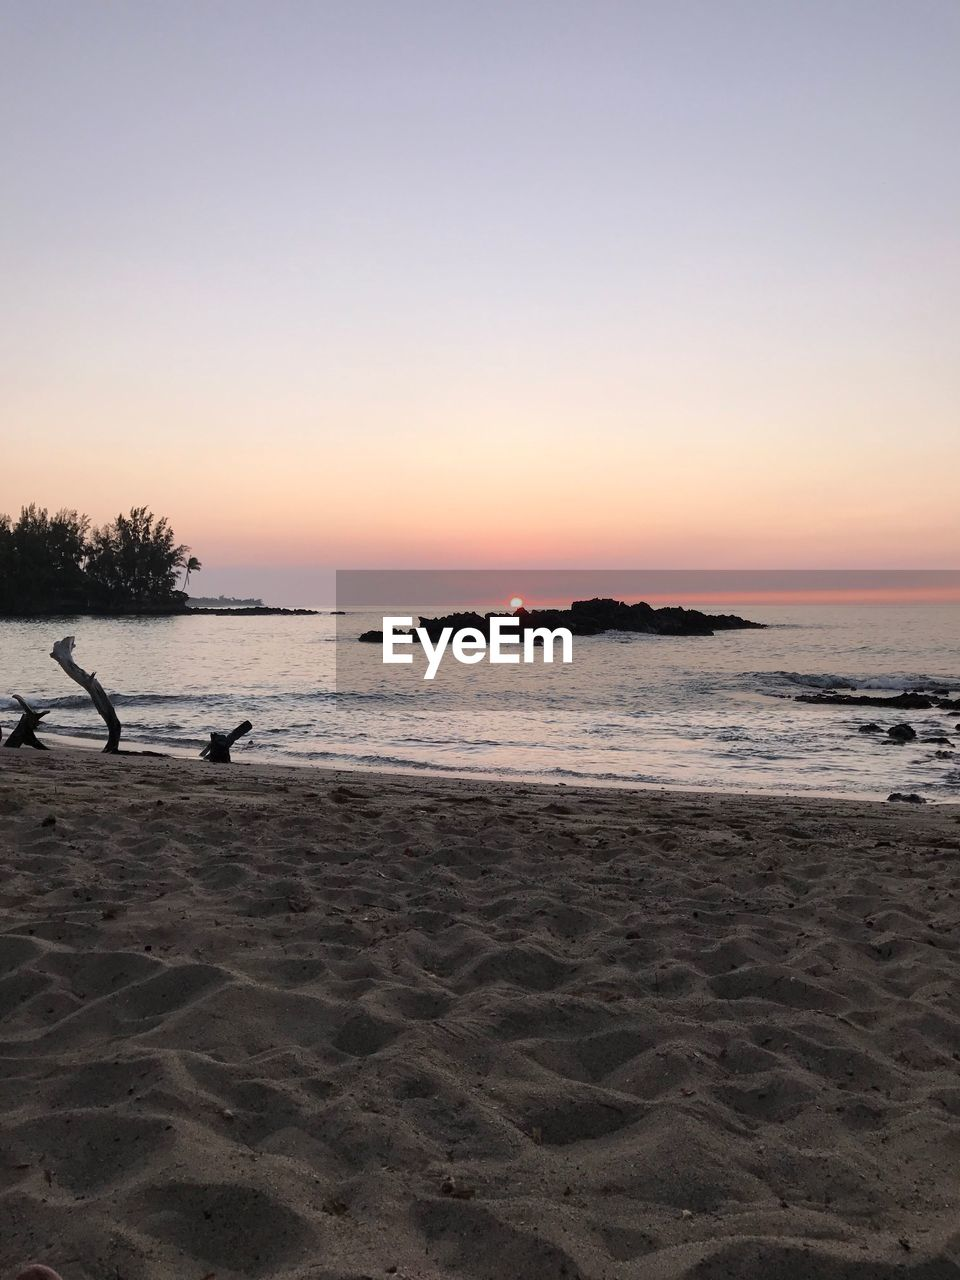 sky, sunset, water, beach, land, sea, scenics - nature, beauty in nature, copy space, sand, tranquility, tranquil scene, nature, horizon over water, clear sky, horizon, orange color, non-urban scene, idyllic, no people, outdoors